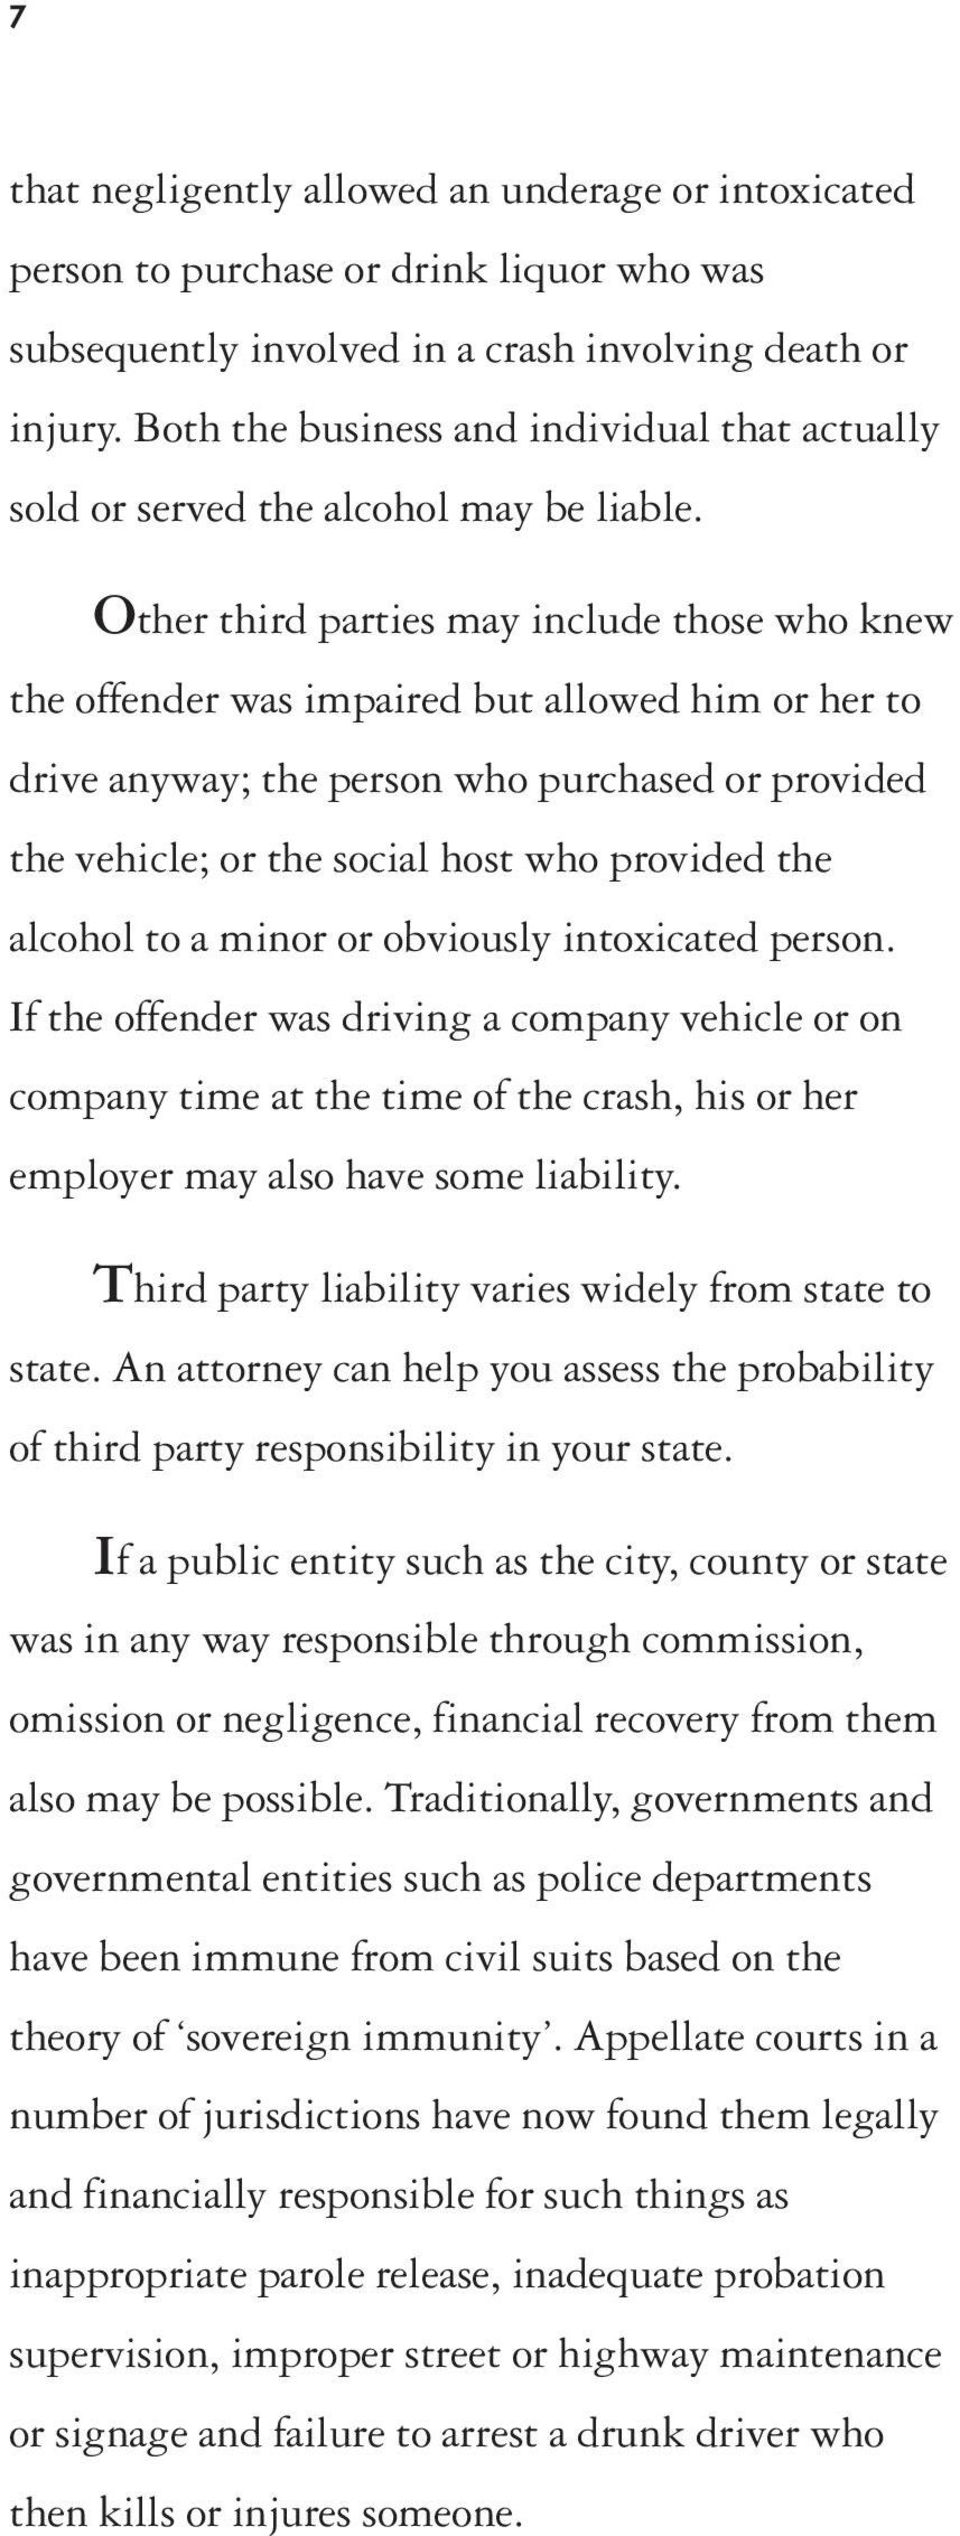 Other third parties may include those who knew the offender was impaired but allowed him or her to drive anyway; the person who purchased or provided the vehicle; or the social host who provided the